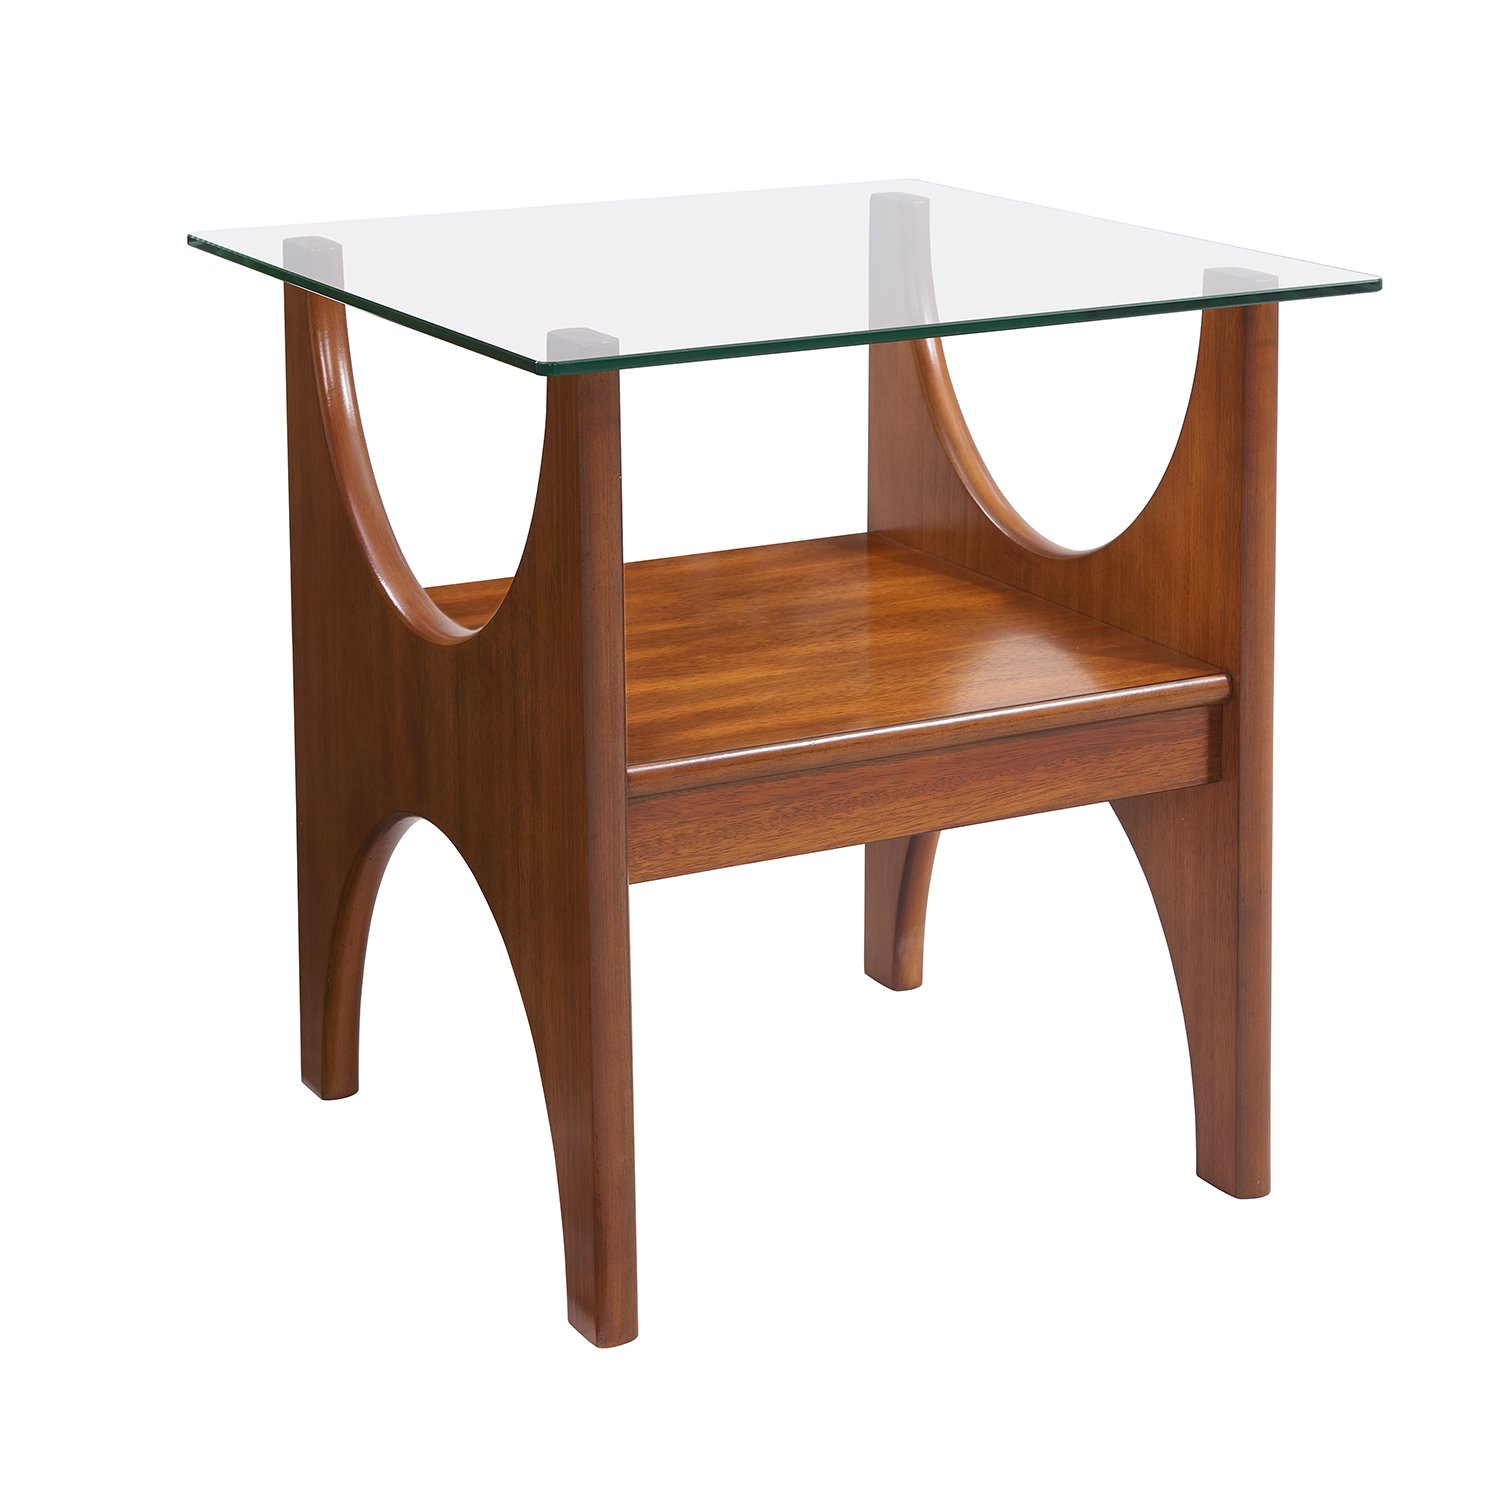 Midcentury Modern Table – Wood Glass Side Table – Scandinavian Inspired Design